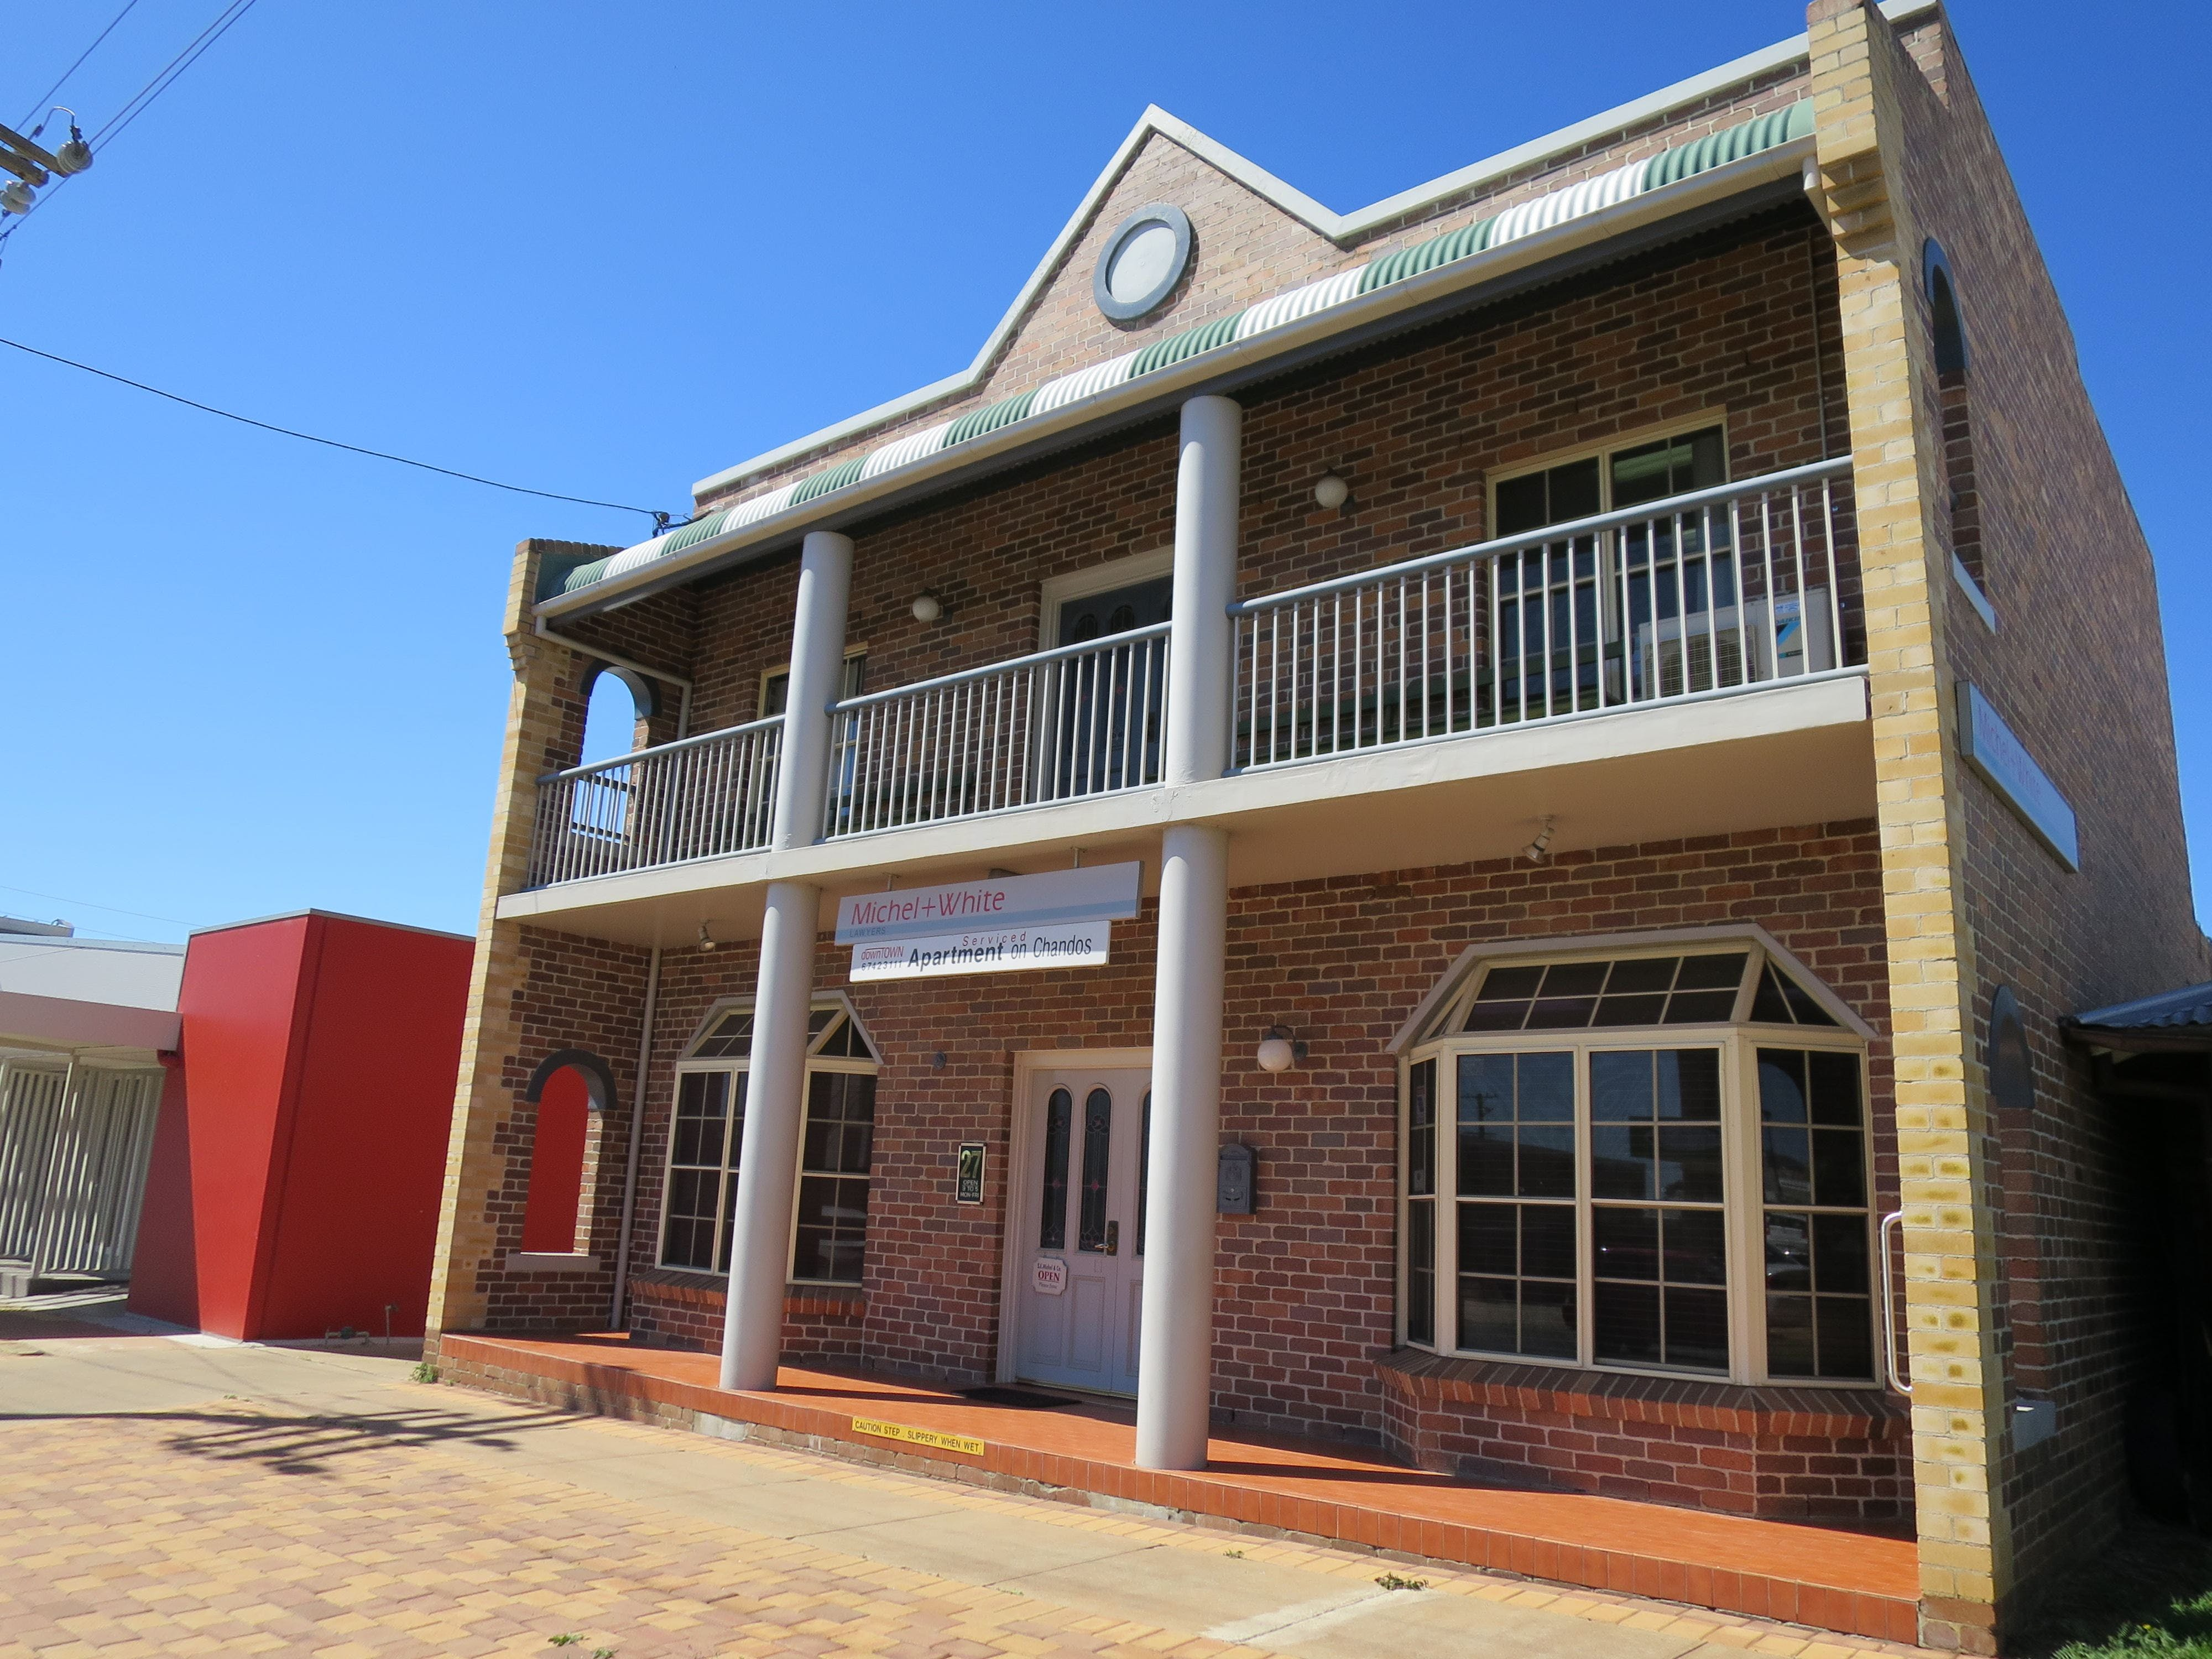 Downtown Apartment on Chandos - Accommodation Coffs Harbour